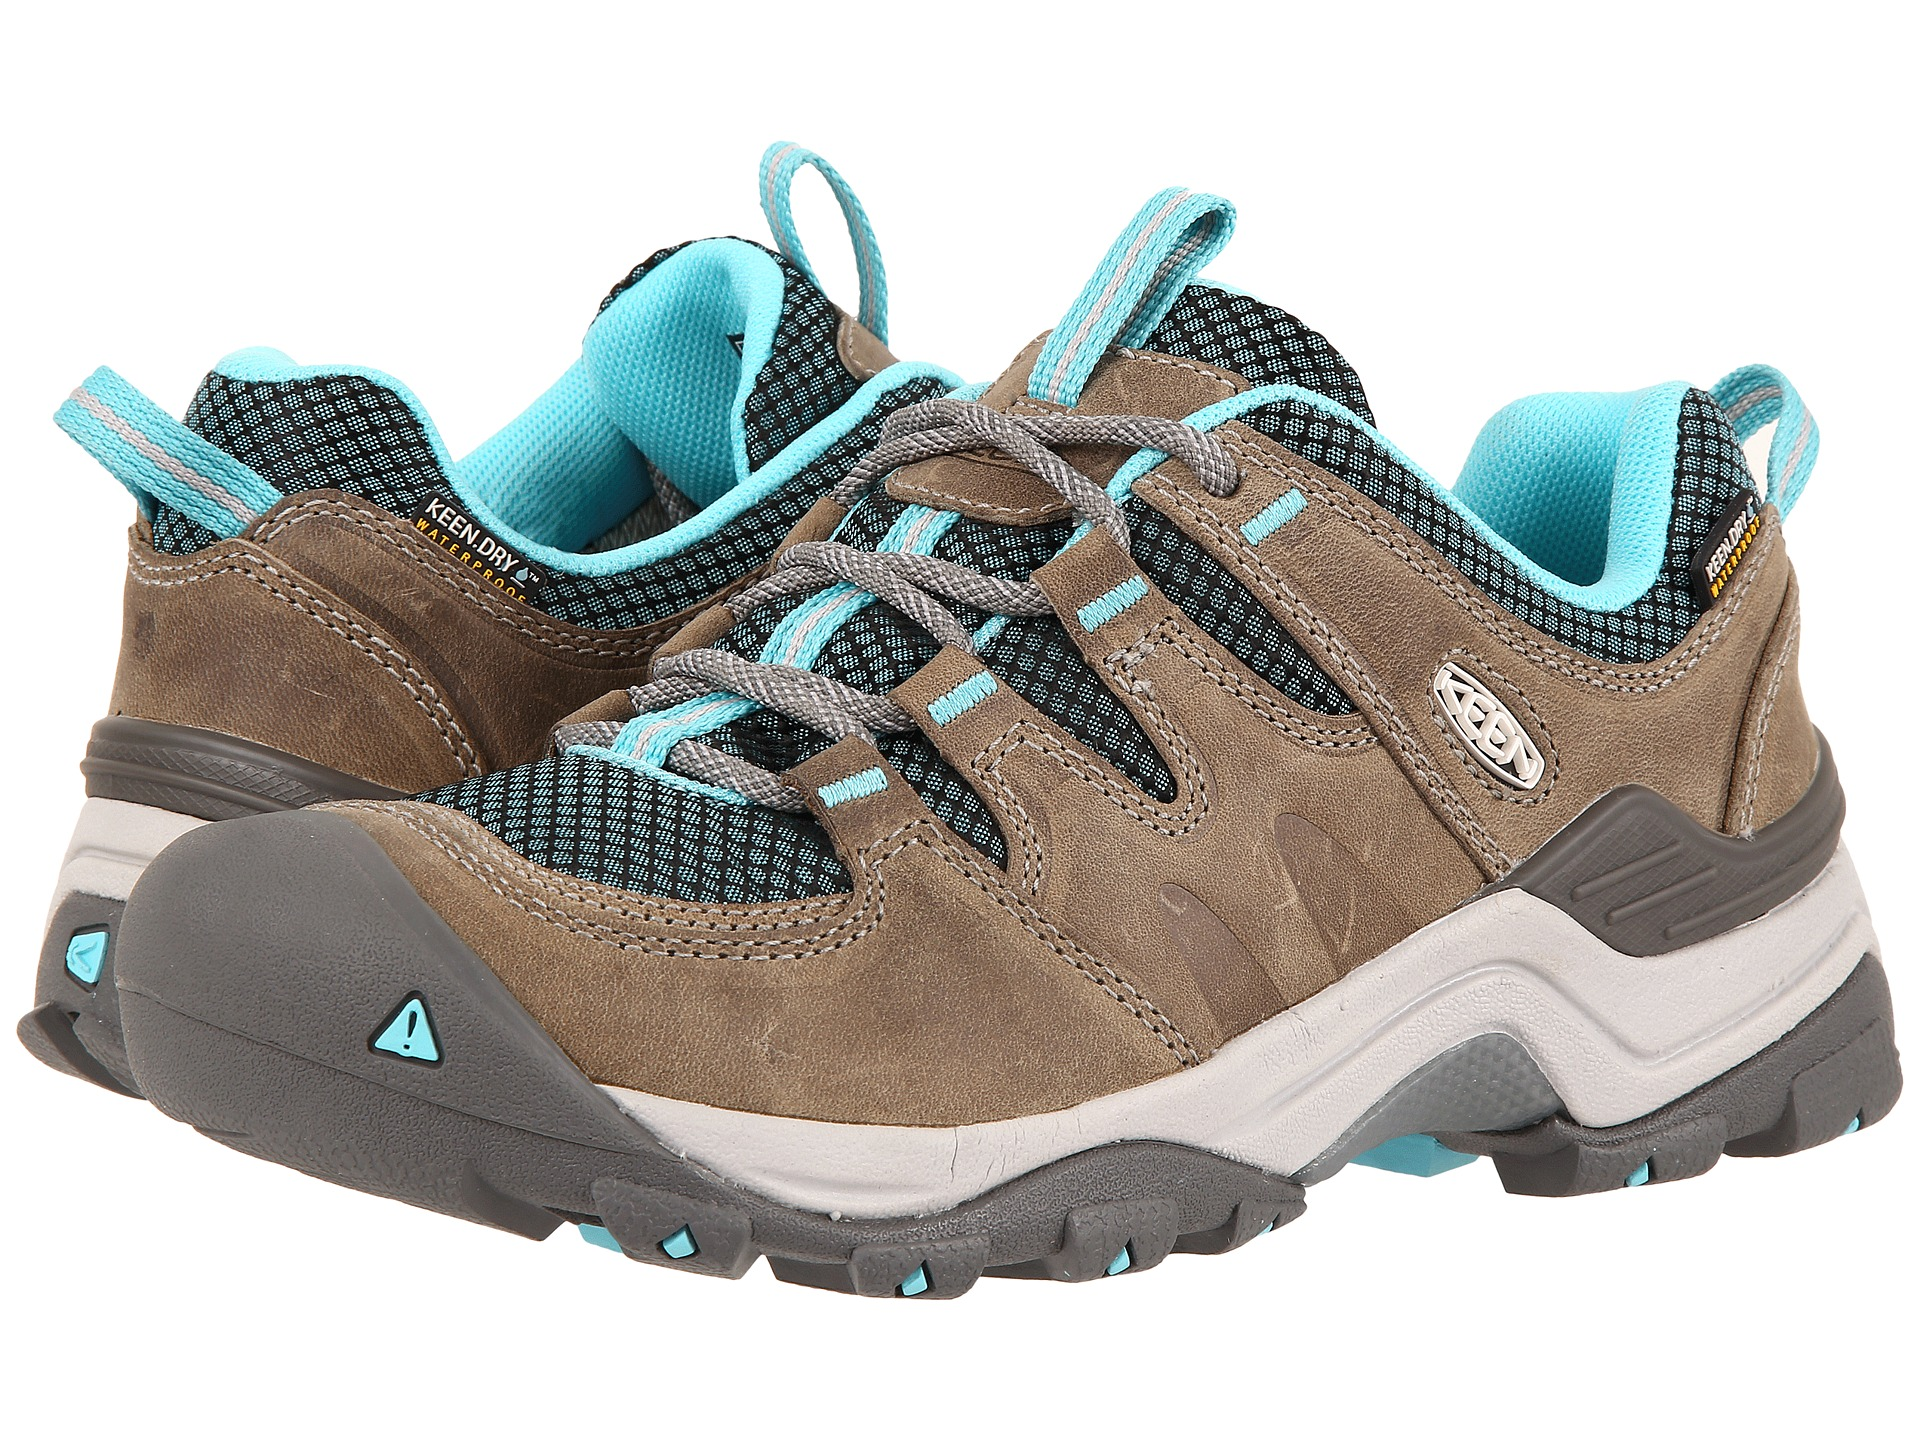 Shop for Keen Women's Shoes at Shopzilla. Buy Clothing & Accessories online and read professional reviews on Keen Women's Shoes. Find the right products at the right price every time.